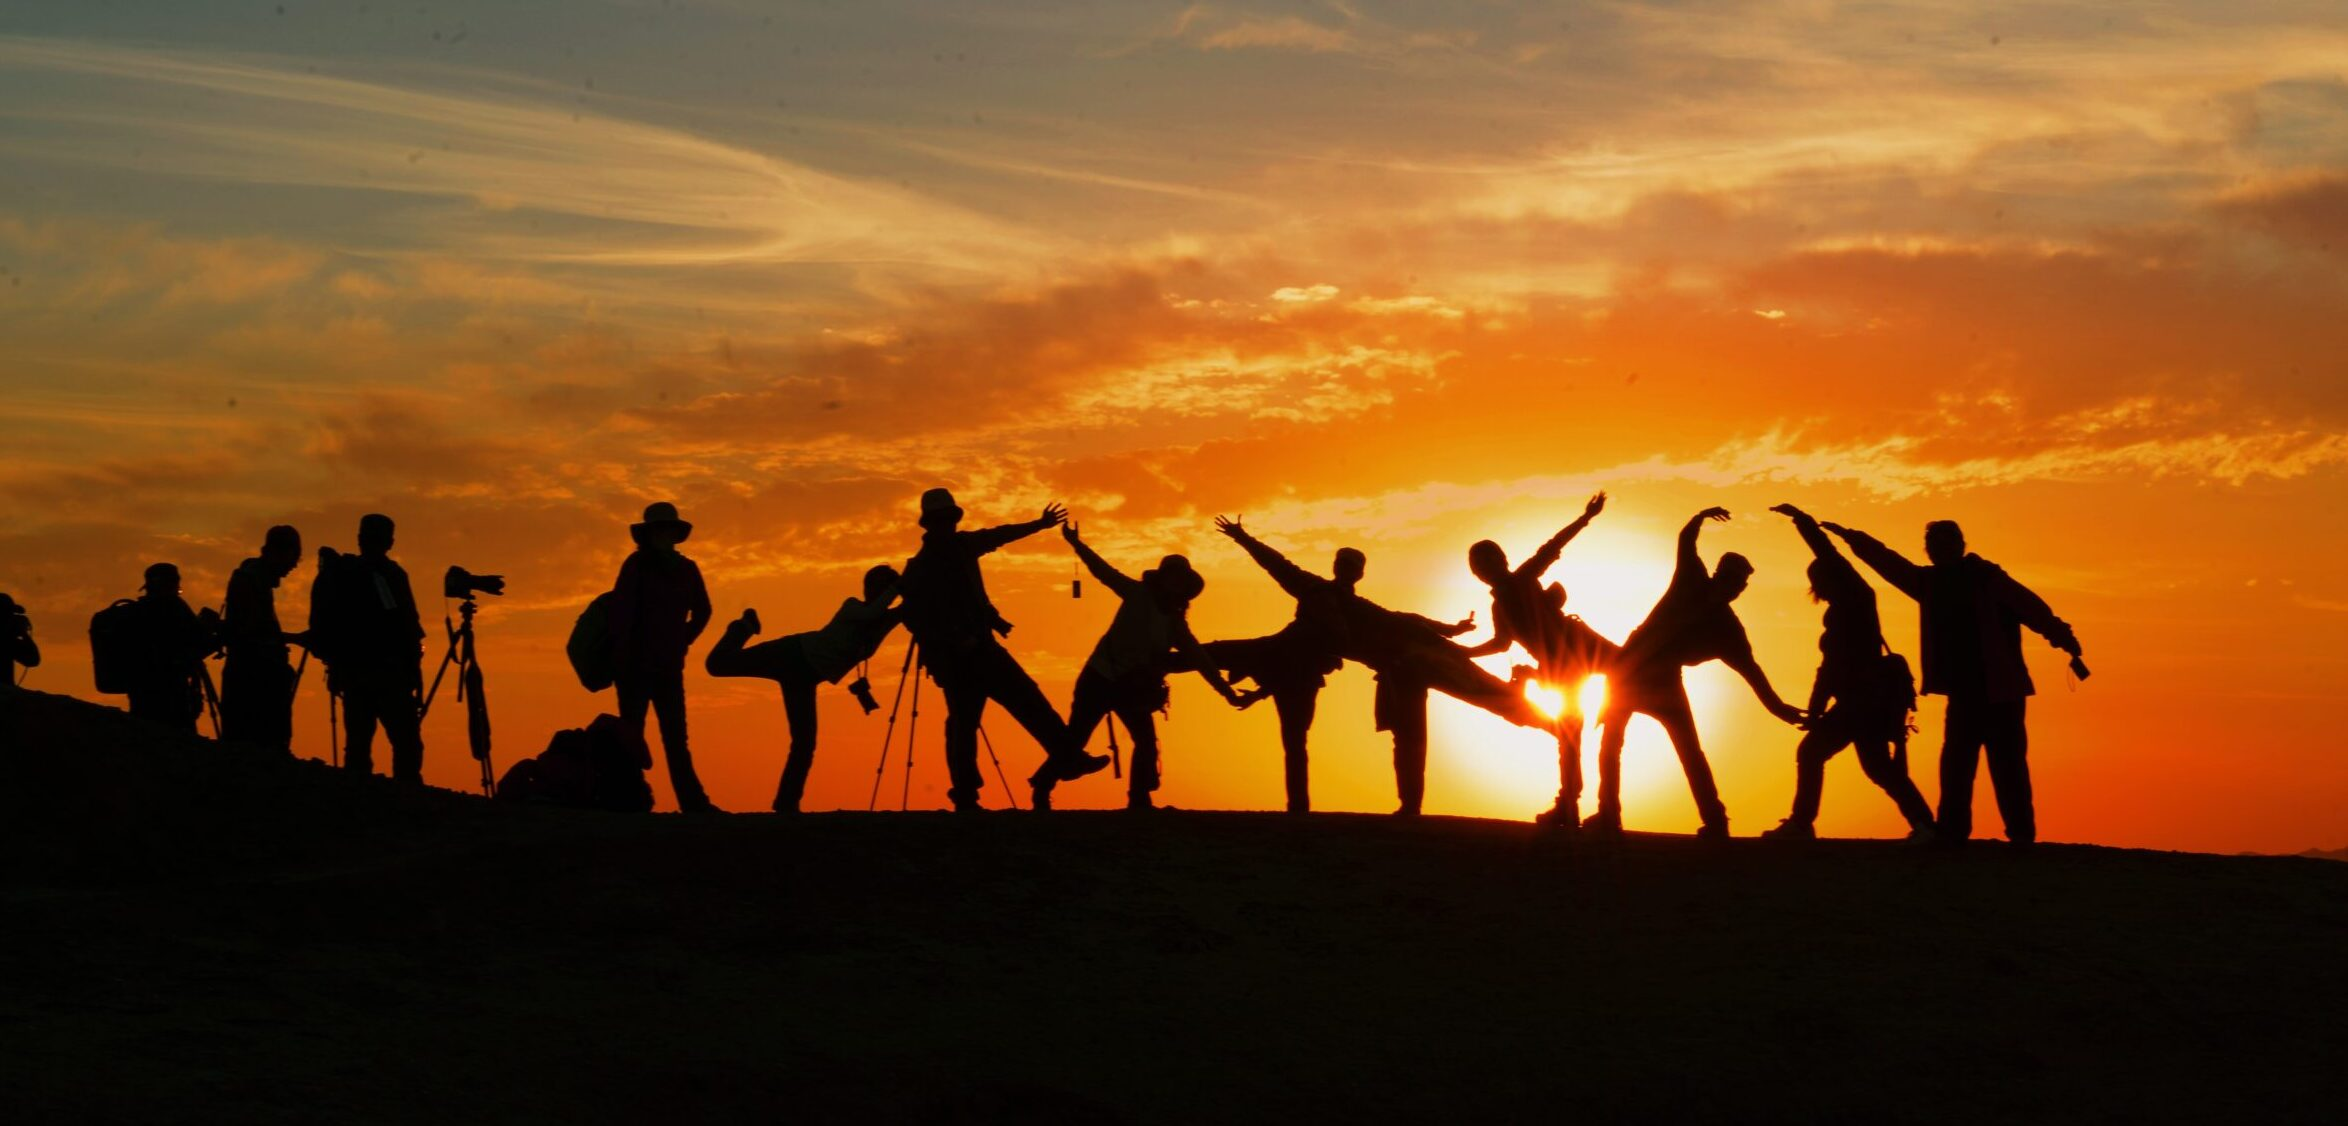 Group of people on a hill at sunset with their silhouettes.